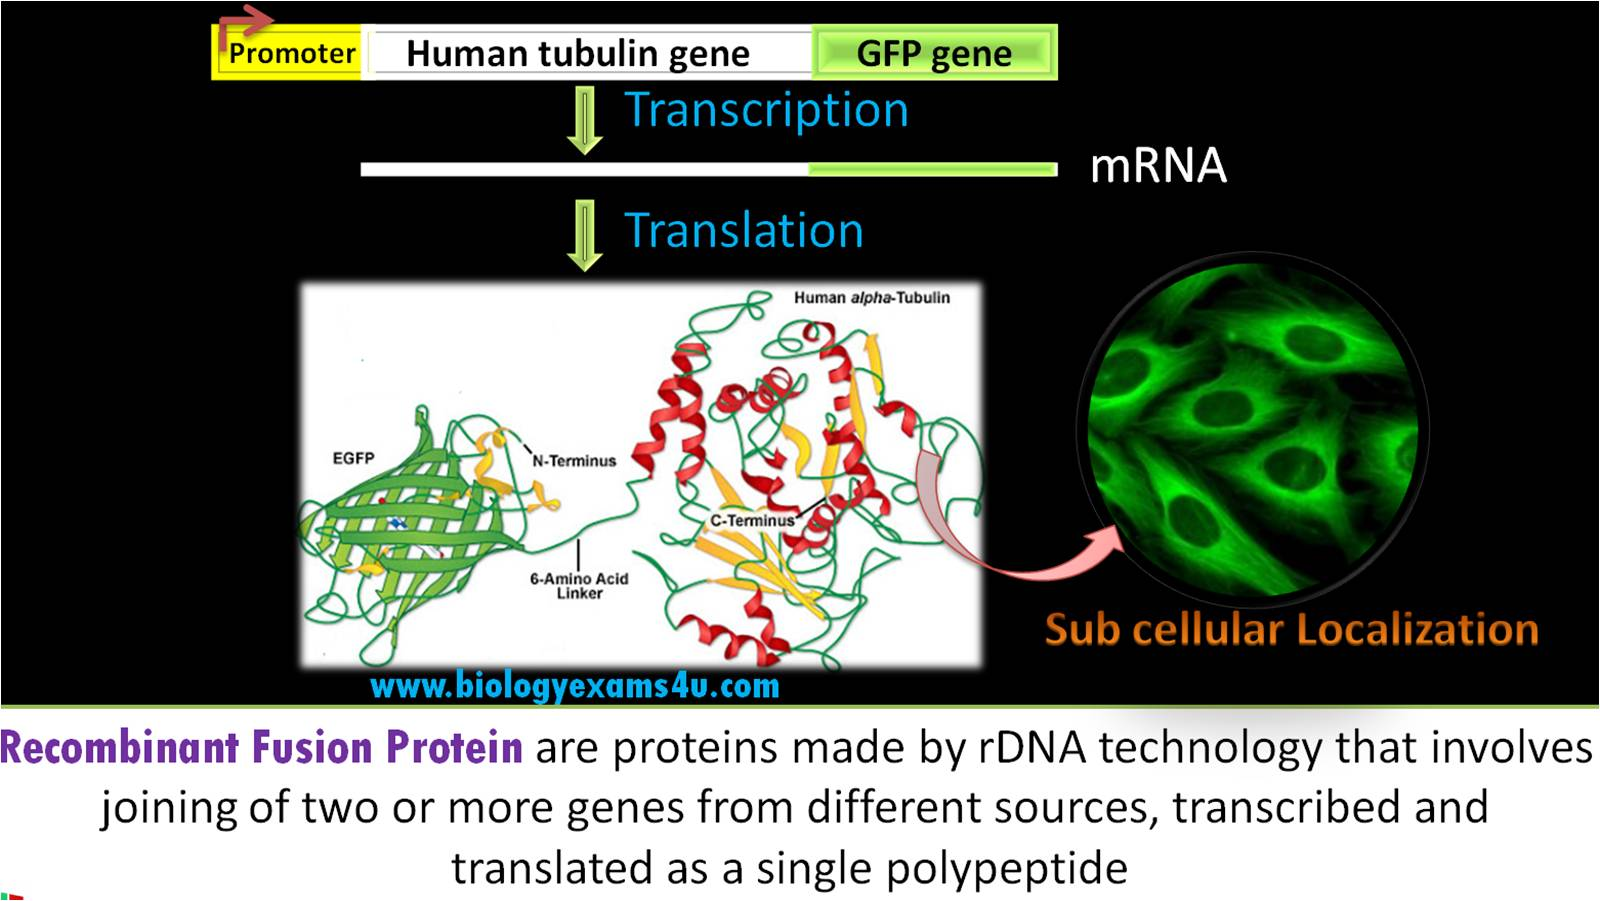 Recombinant Fusion Protein and its uses